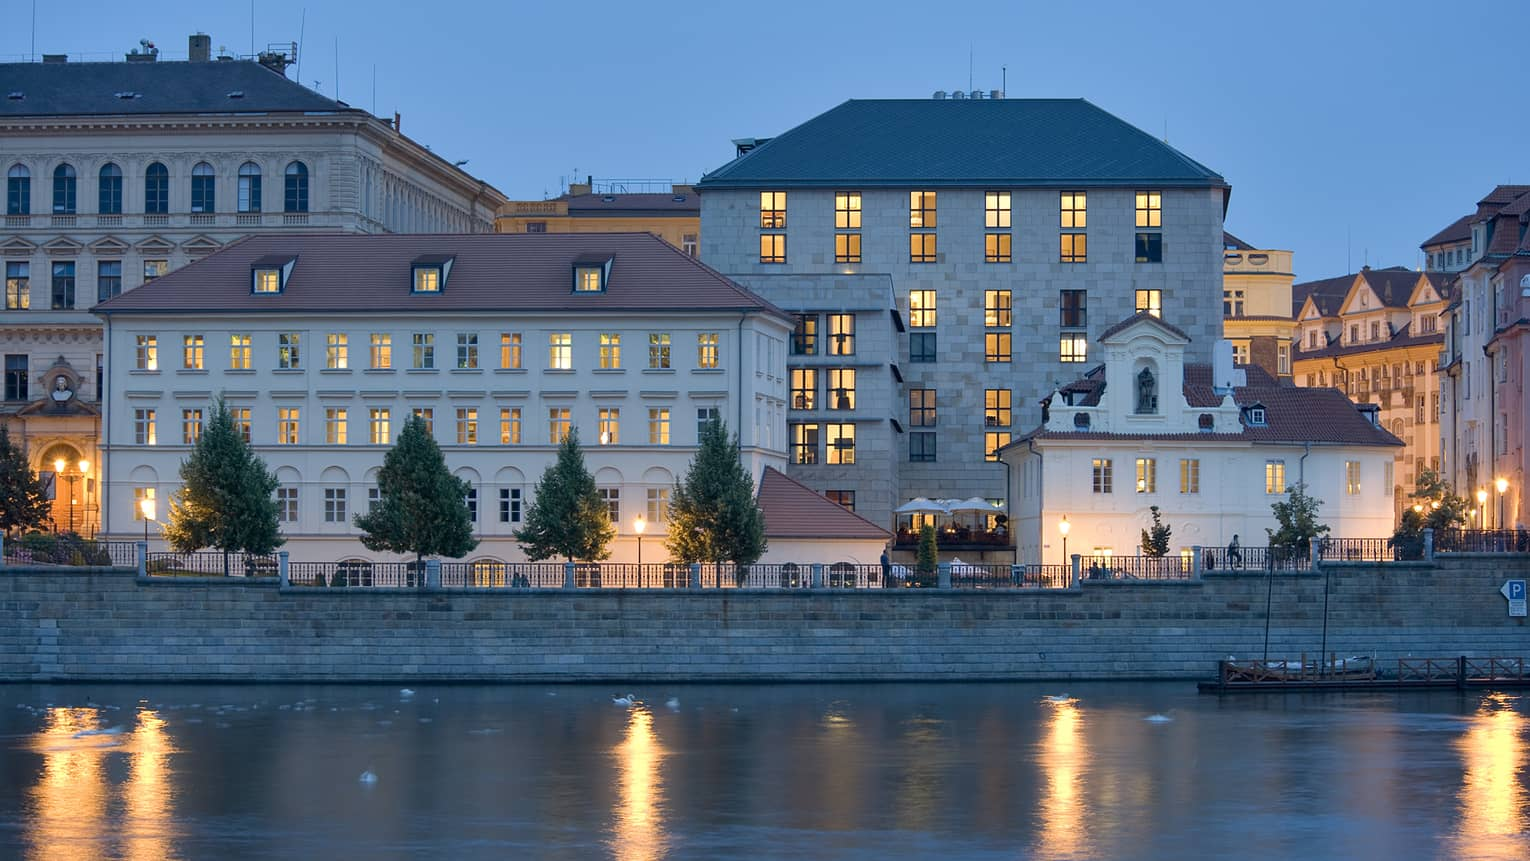 Four Seasons Hotel Prague exterior at night with lit windows, reflecting on Vltava River